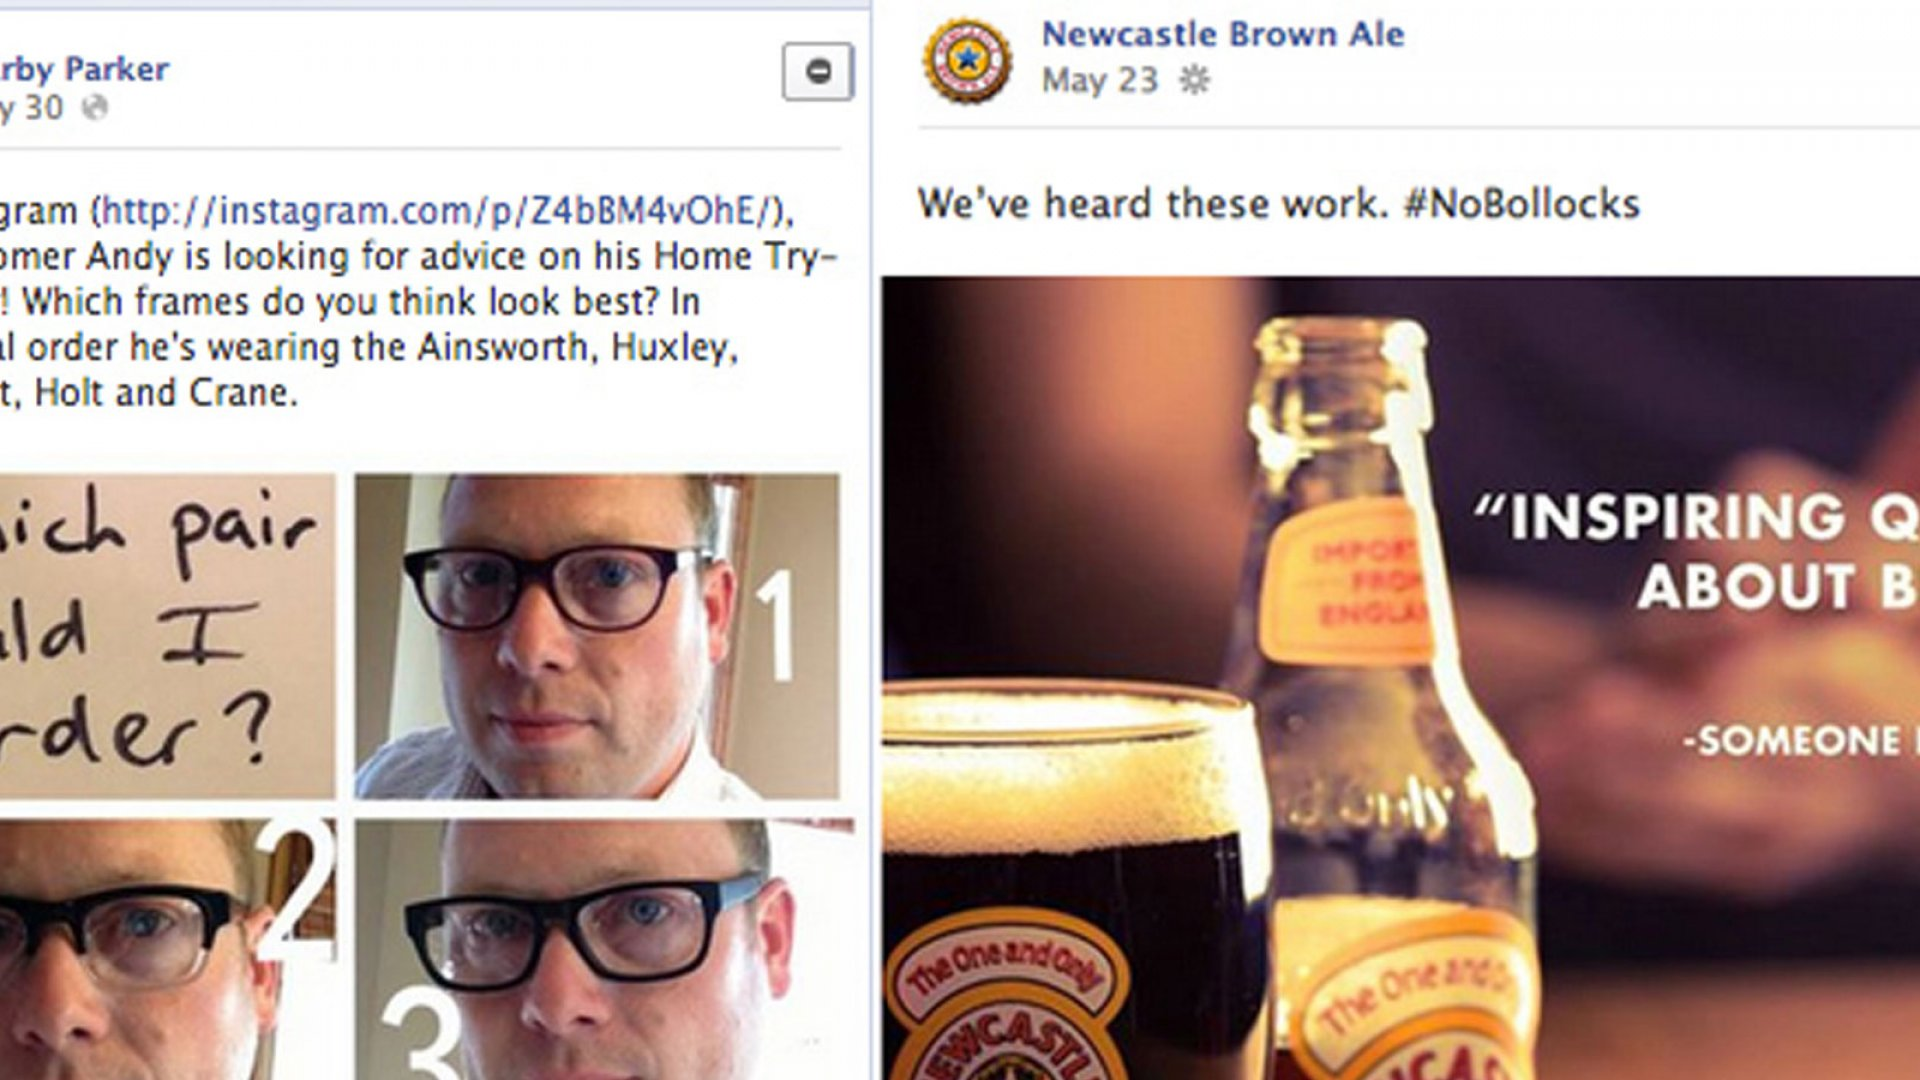 Sample Facebook posts from Warby Parker and Newcastle Brown Ale--two brands with exceptional Facebook presences.